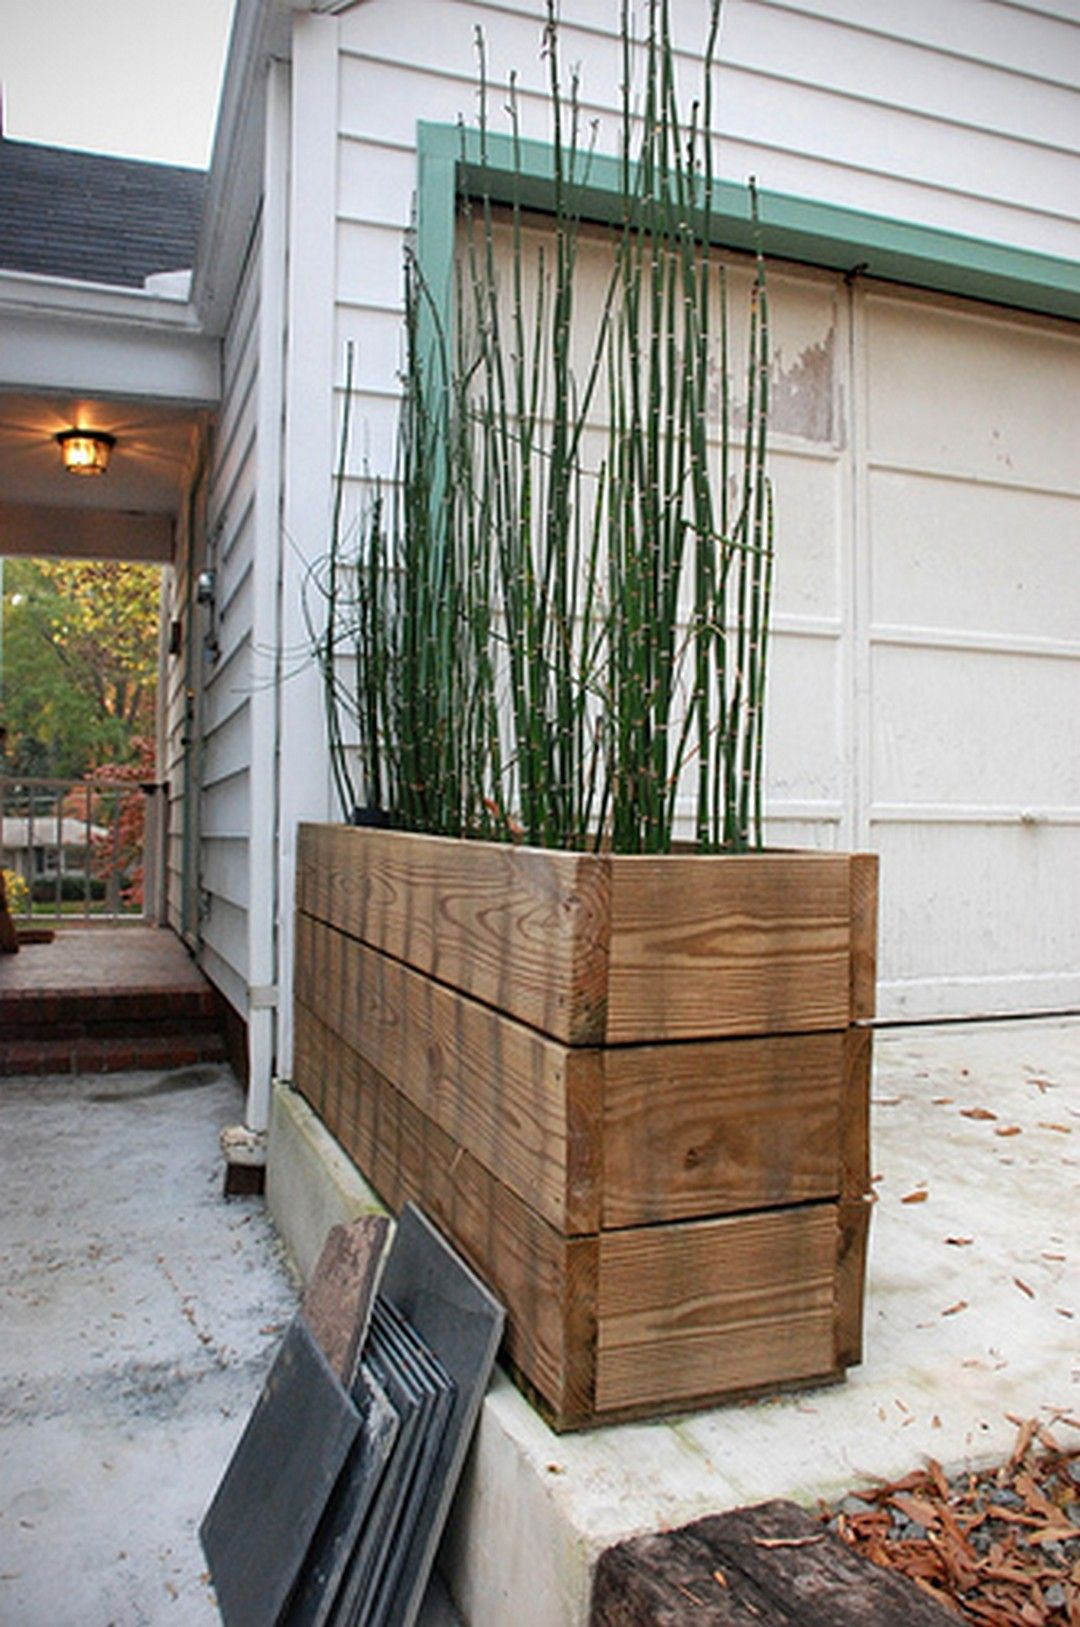 style how planter projects diy build pallet home creative a your wood up cross boxes box and ideas to wooden criss